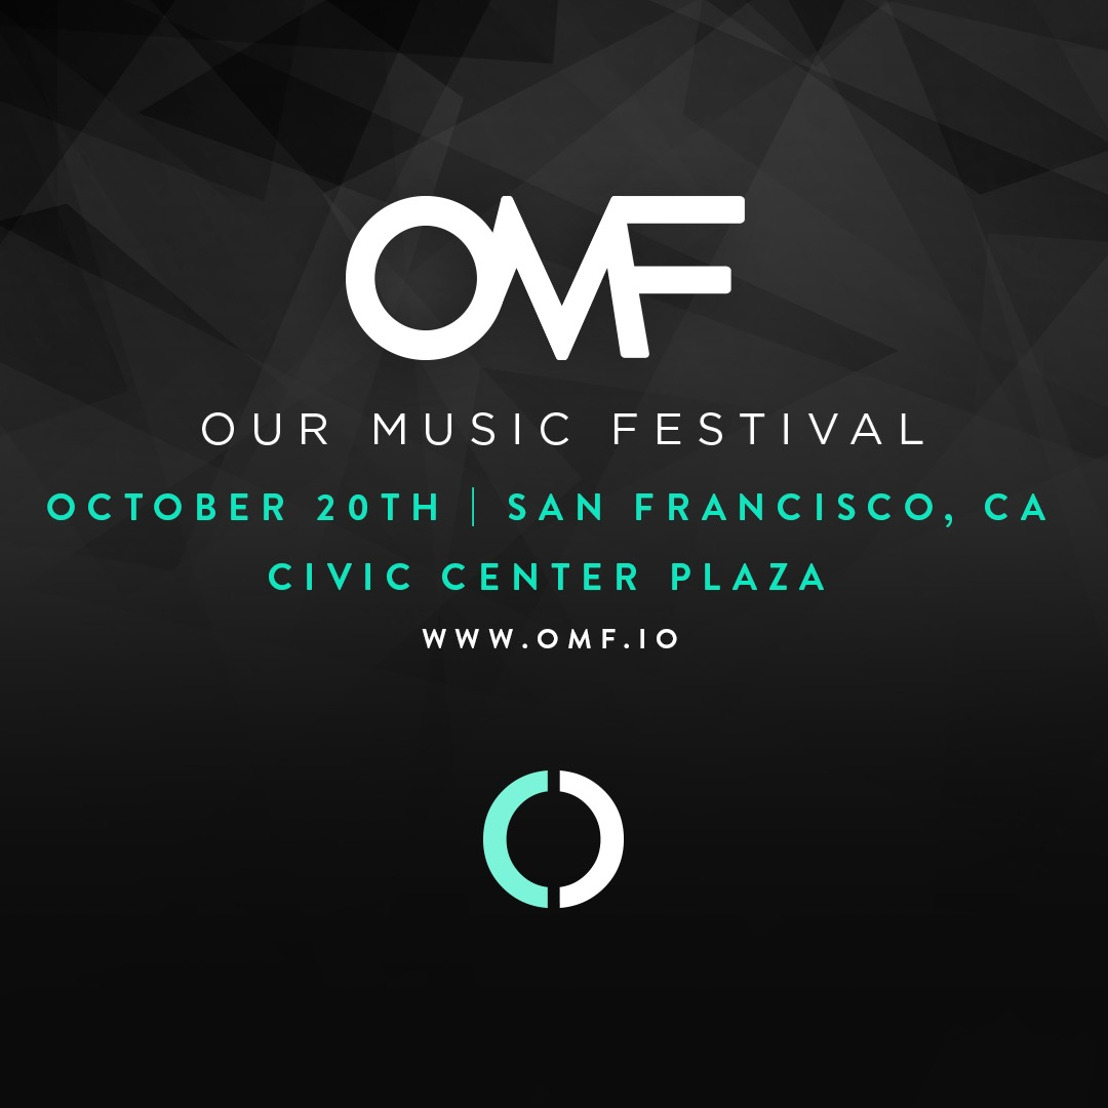 FIRST-EVER BLOCKCHAIN-POWERED FESTIVAL, OUR MUSIC FESTIVAL, TO BE HELD IN SAN FRANCISCO OCTOBER 20 - FEATURING ZEDD